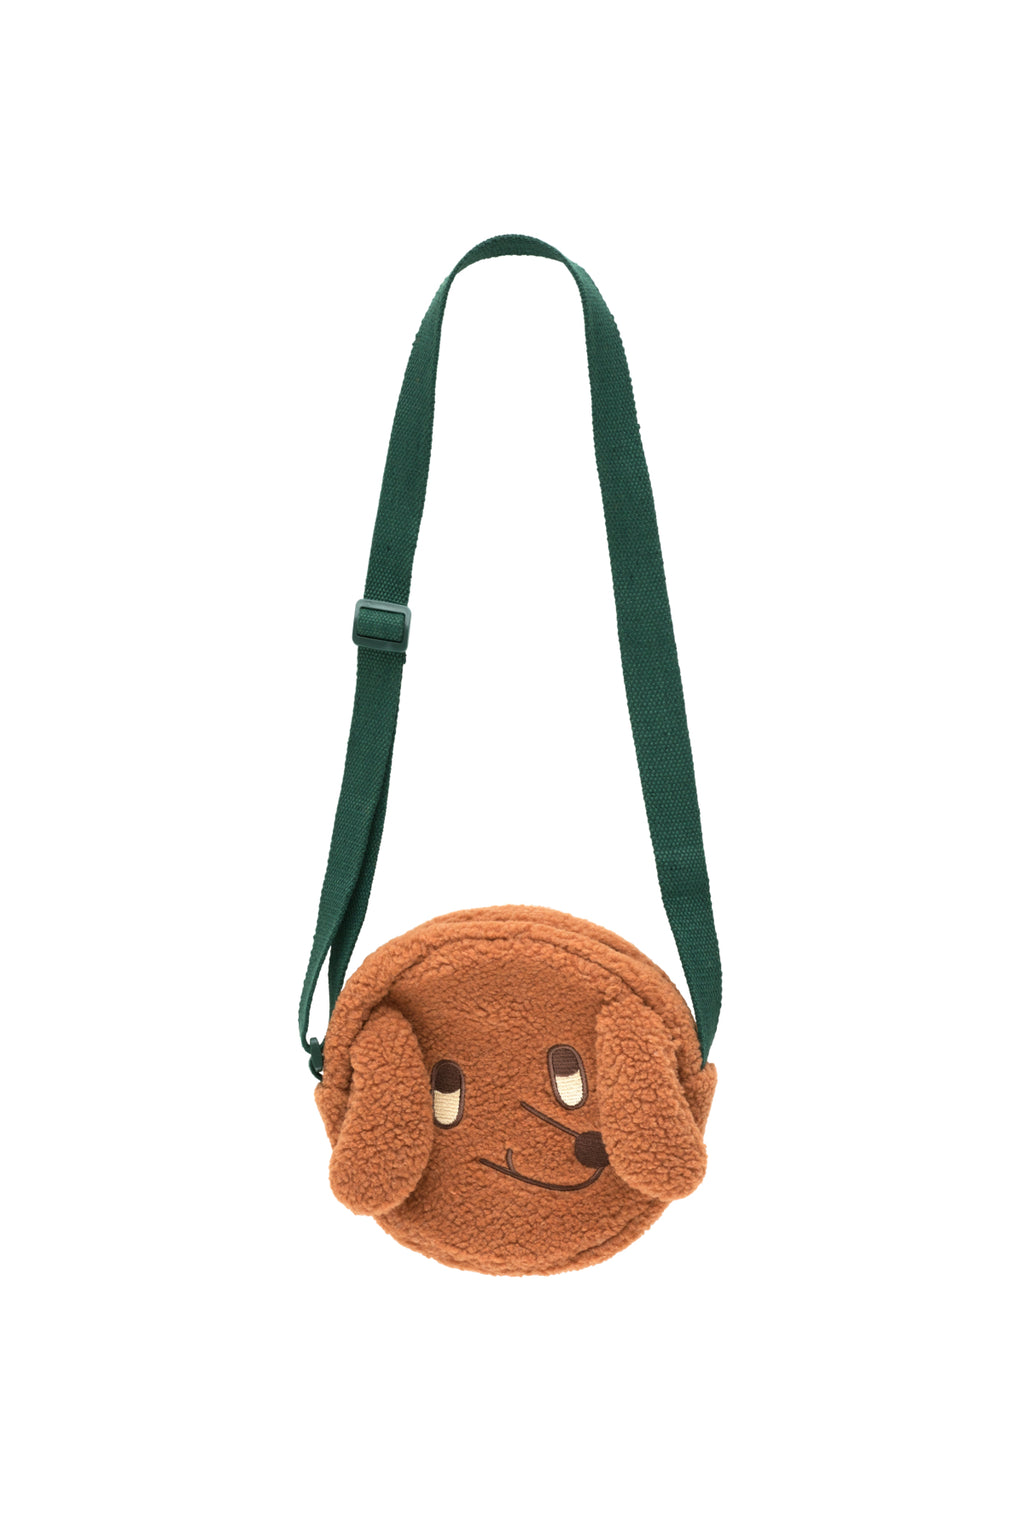 "Tiny Cottons ""Dog"" Sherpa Bag - Brown"